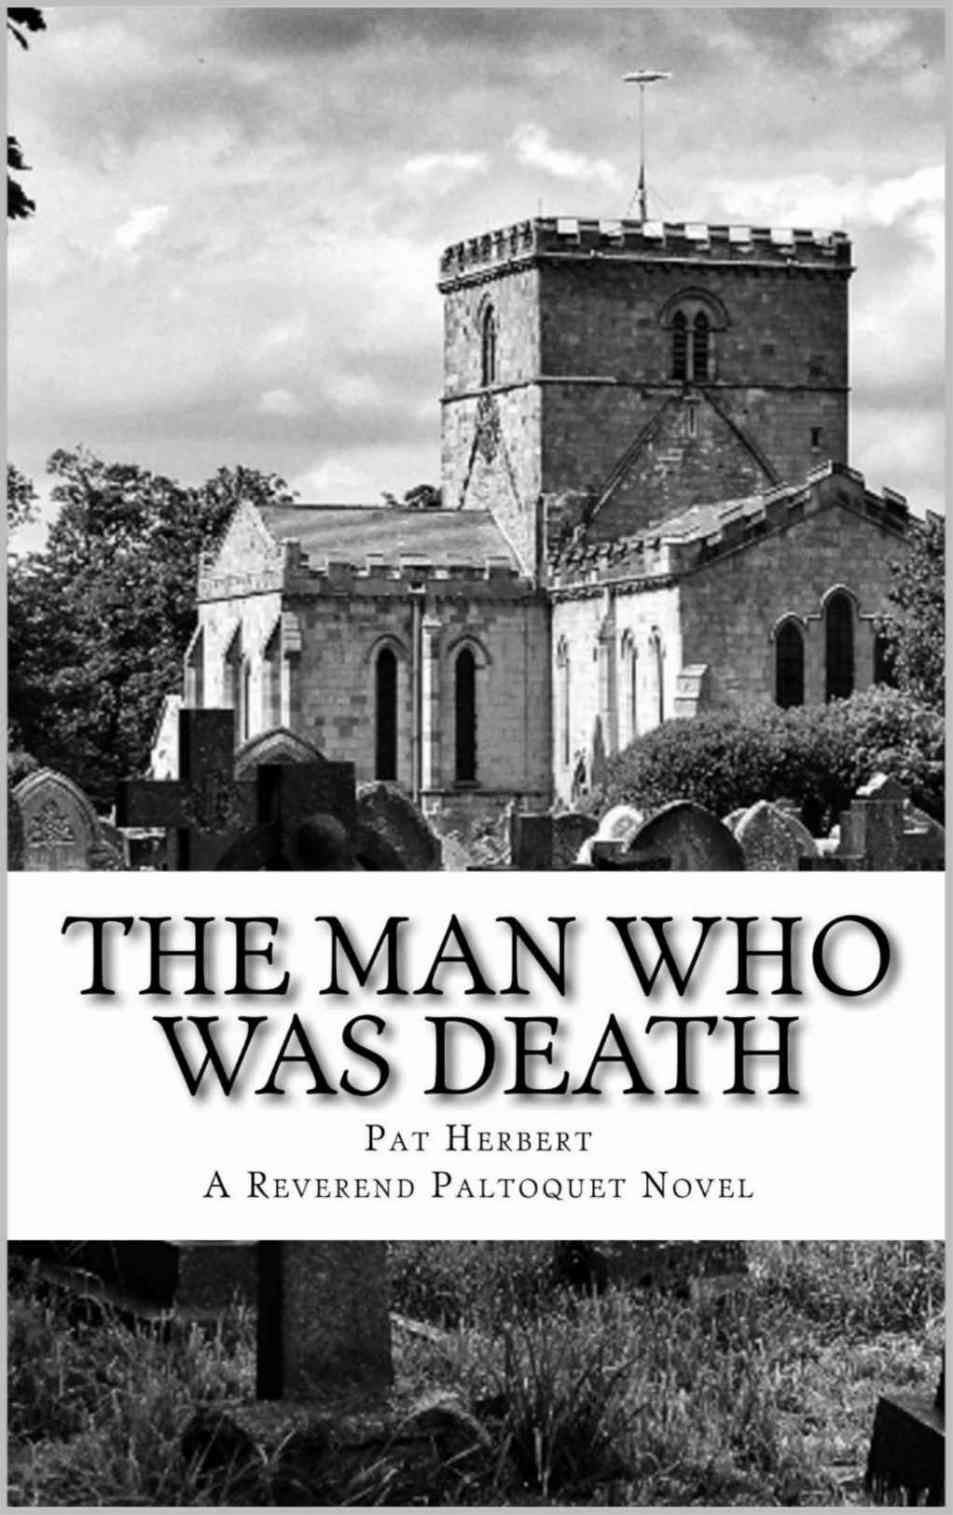 THE MAN WHO WAS DEATH - cover image